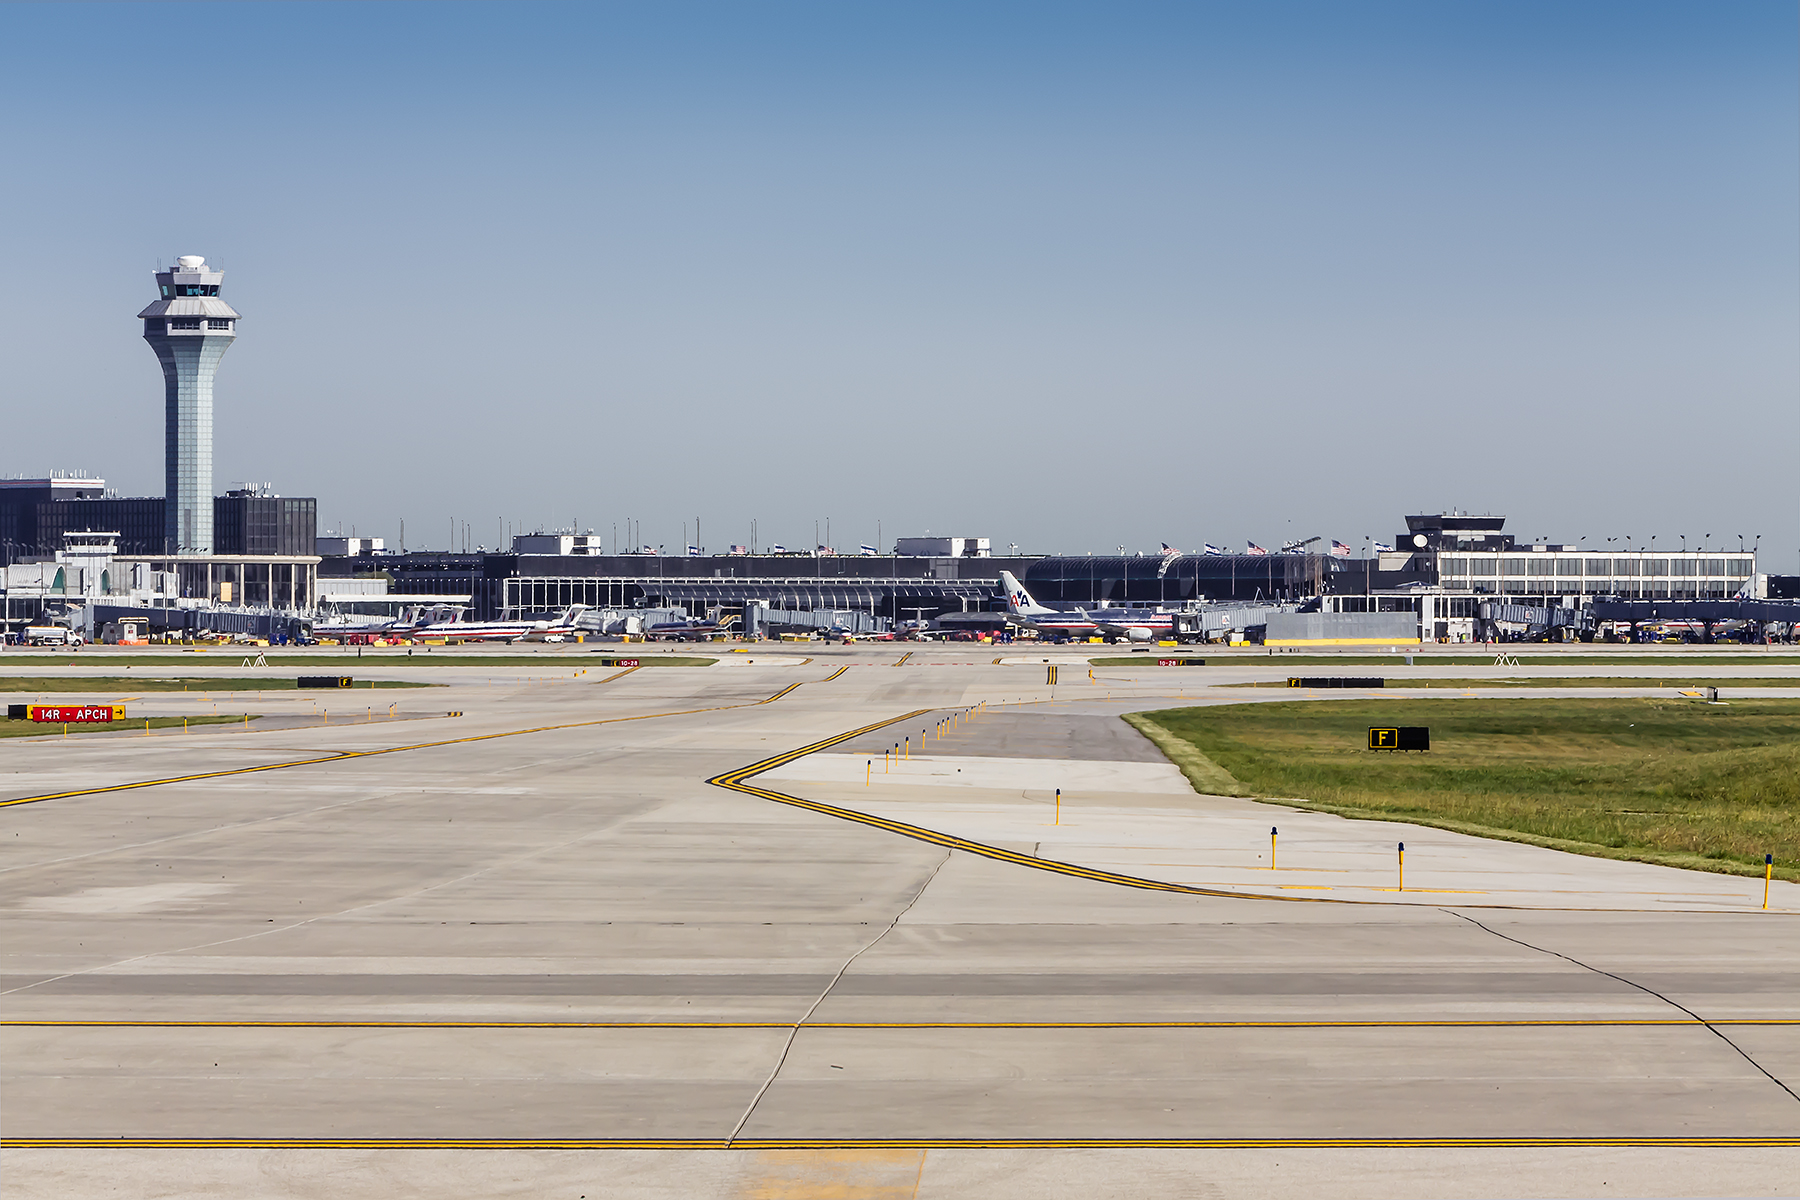 02-OHare-Taxiway-ZS-Chicago-Illinois-Ele